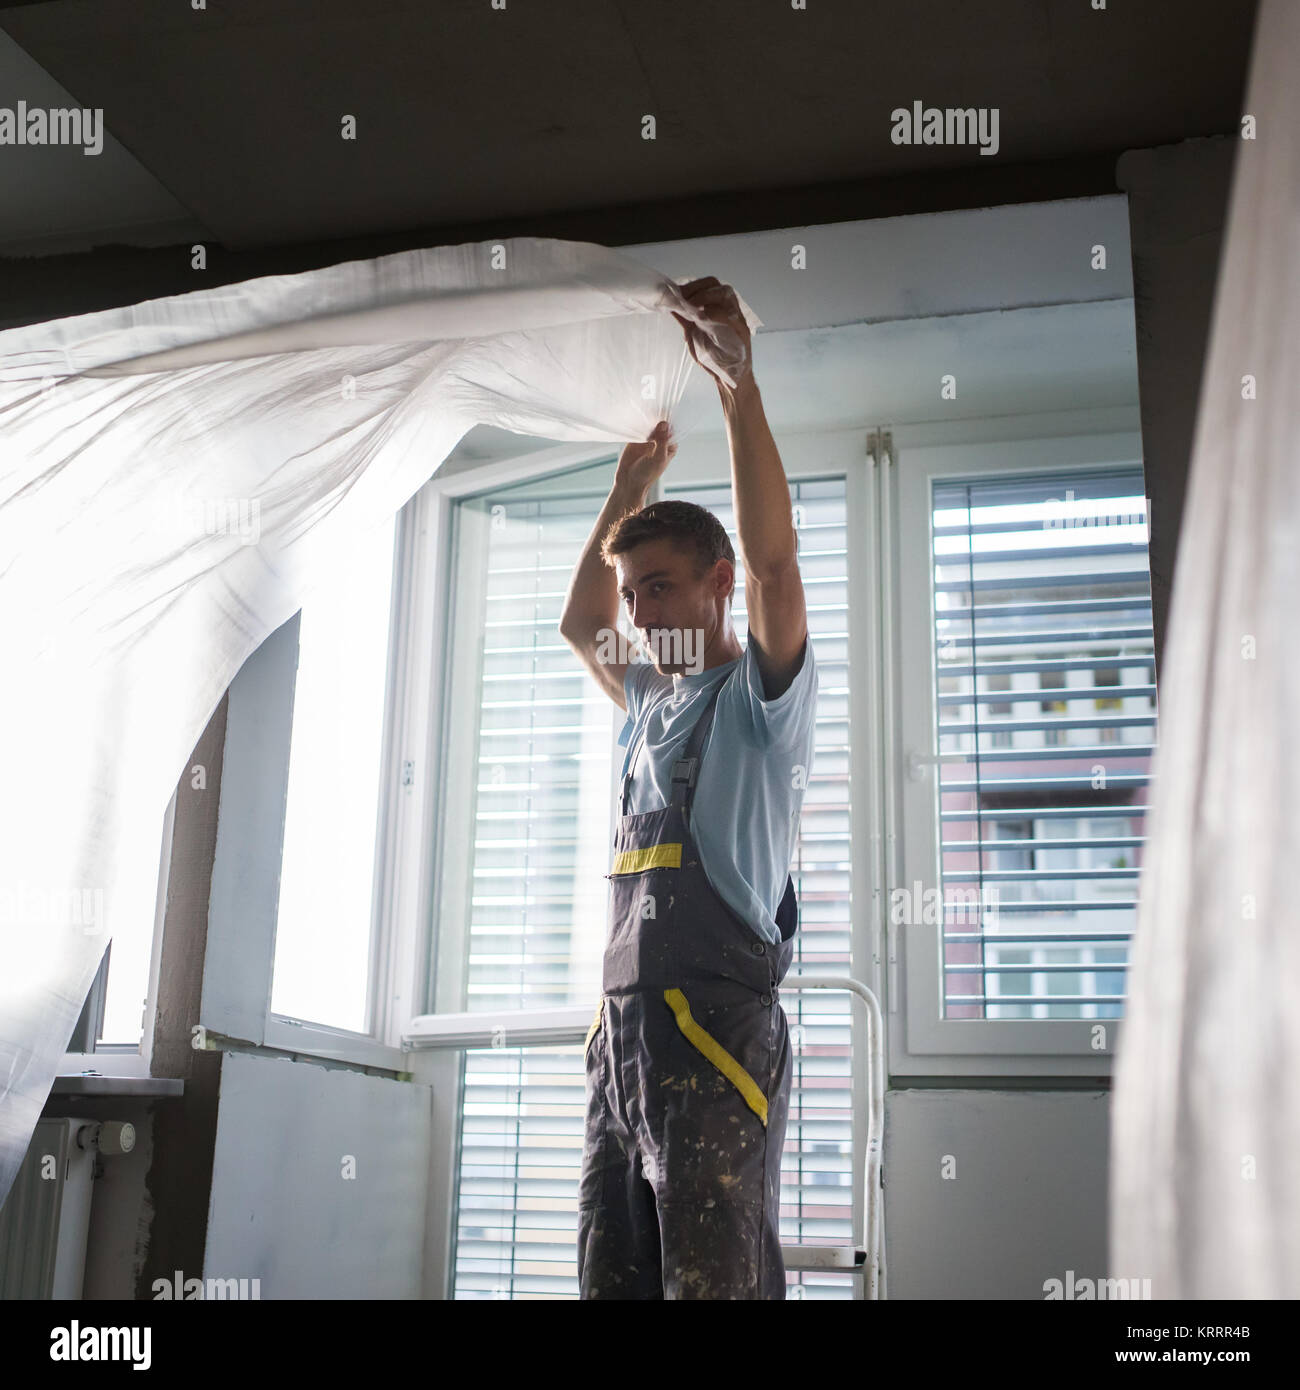 Plasterer renovating indoor walls and ceilings. Finishing works. - Stock Image